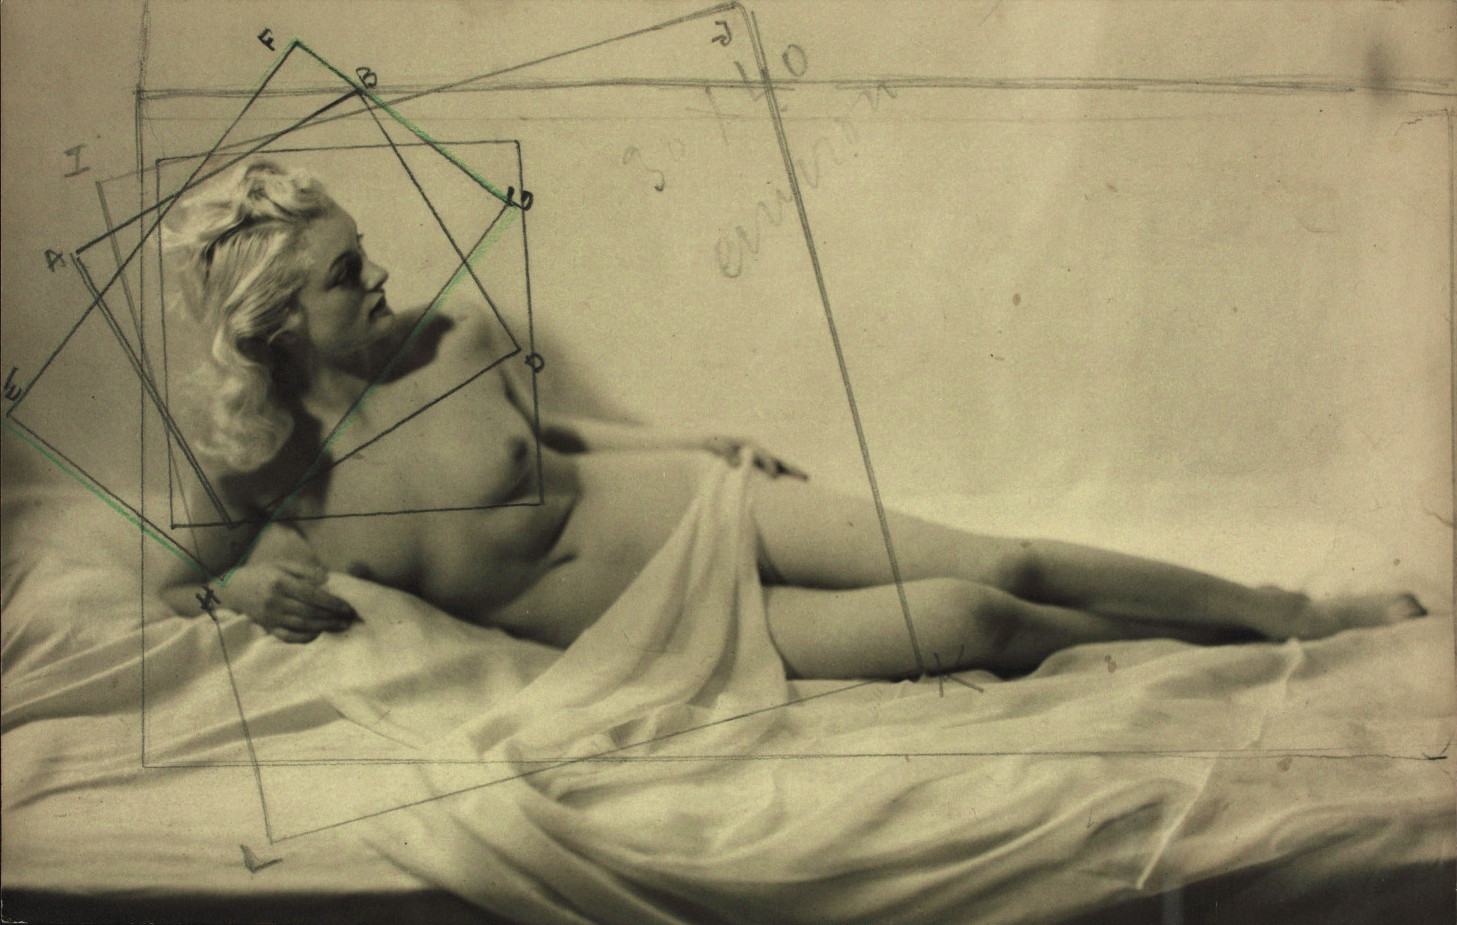 The Representation of the Nude: Between Affirmation and Subversion - AWARE